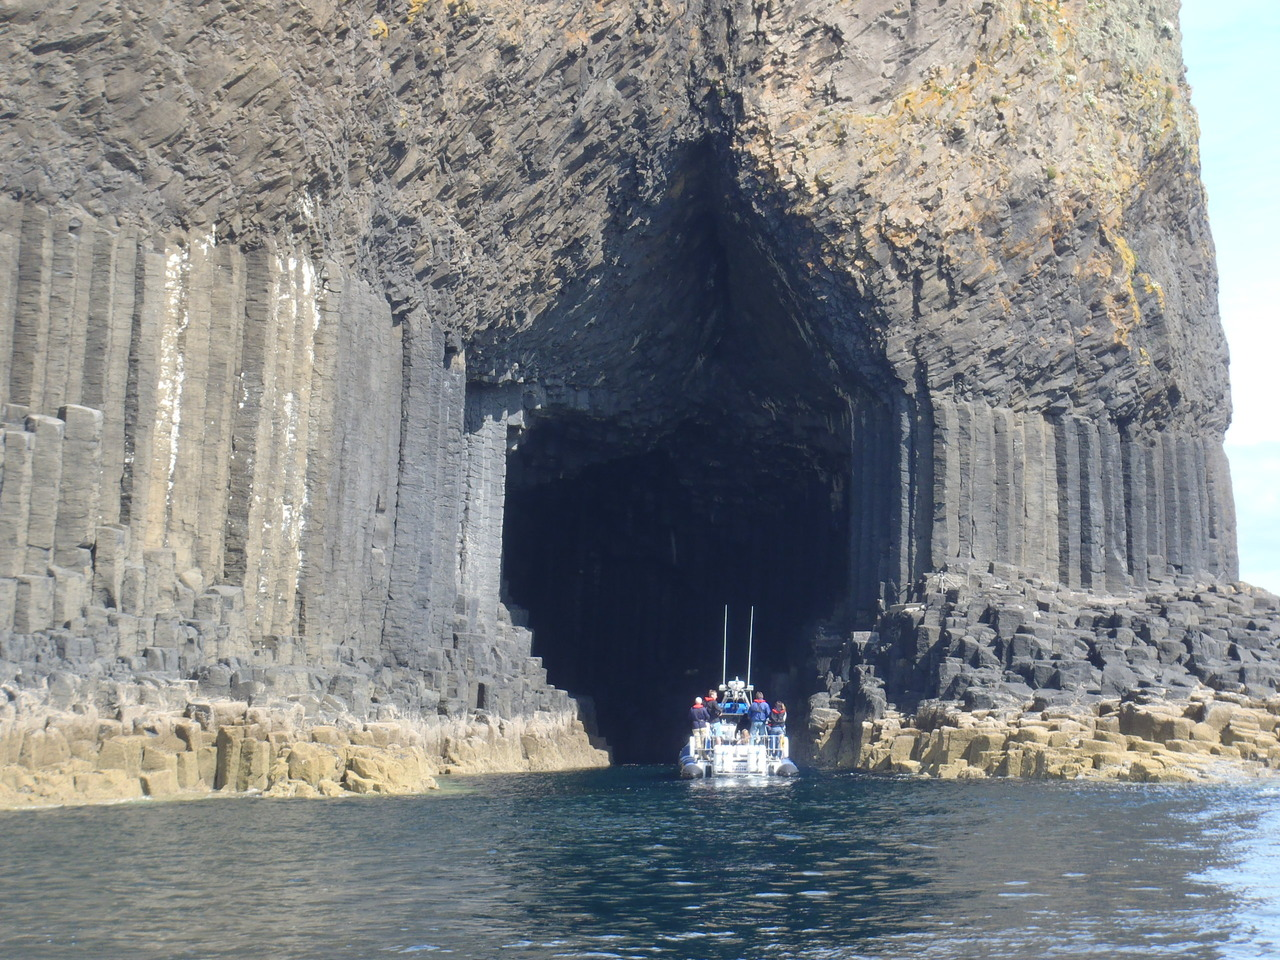 Power of Scotland in Fingals Cave